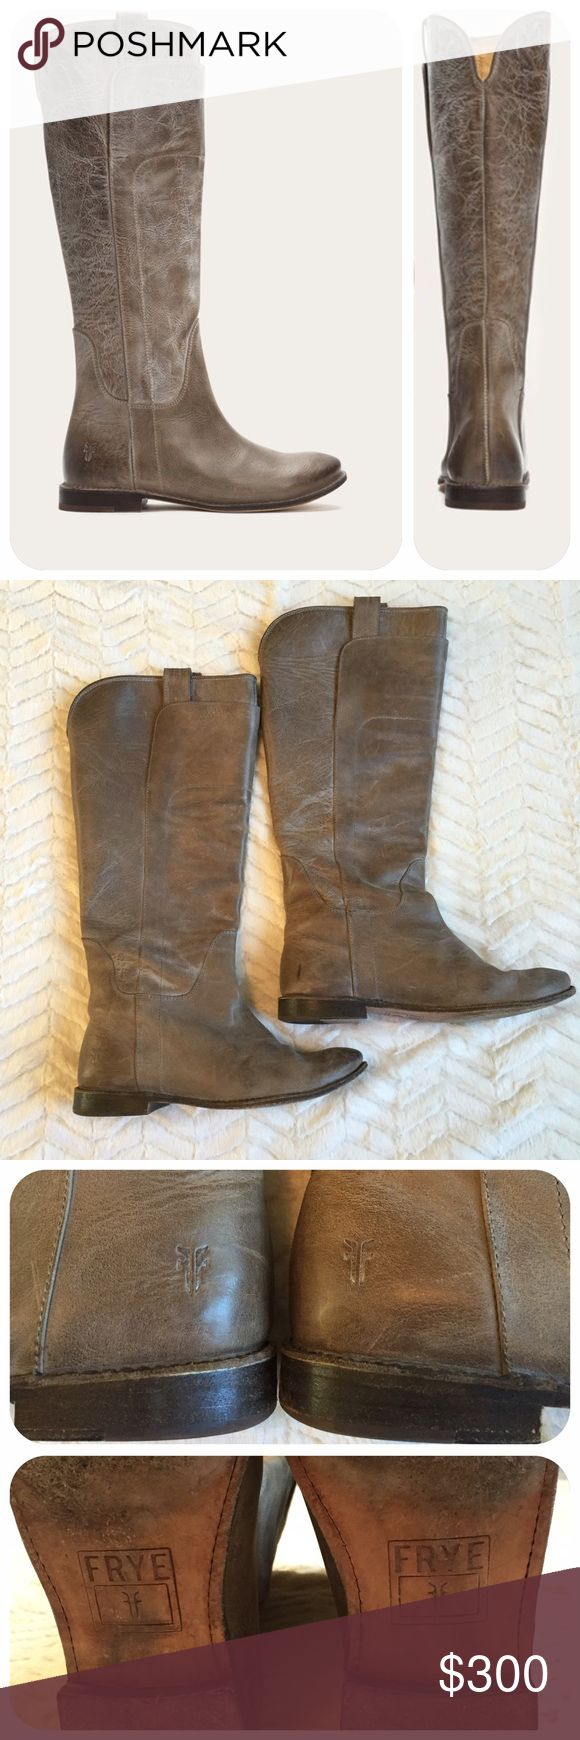 "Frye Paige Tall Riding Boots Grey Price FirmThese have been worn a few times. If you are familiar with Frye boots you know they wear amazingly and look better with some wear. **This item cannot be bundled.** Thank you!  With overlapping front panels and intricate stitching, this standout riding boot boasts a unique, artisanal look. Made of beautiful full grain leather.   - Leather lined - Leather outsole - 14 1/2"" shaft height - 14 3/4"" shaft circumference - 1"" heel height - Stacked leather…"